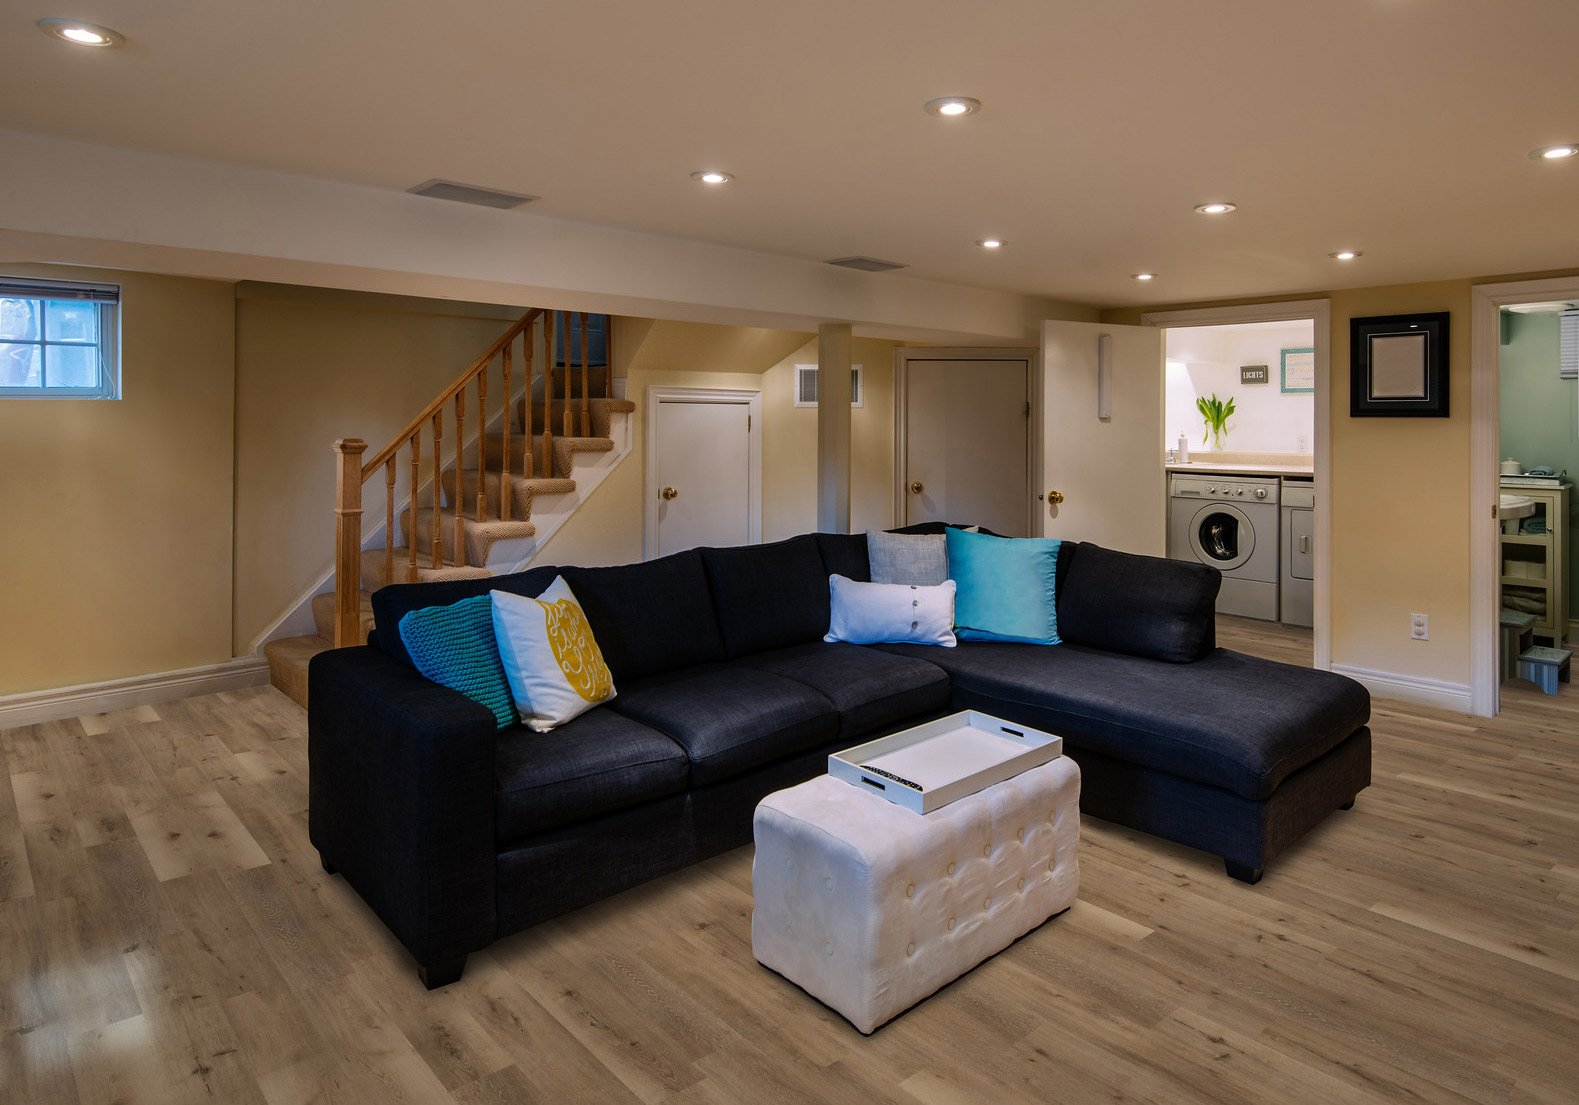 5 Best Flooring Options For Basements Cali